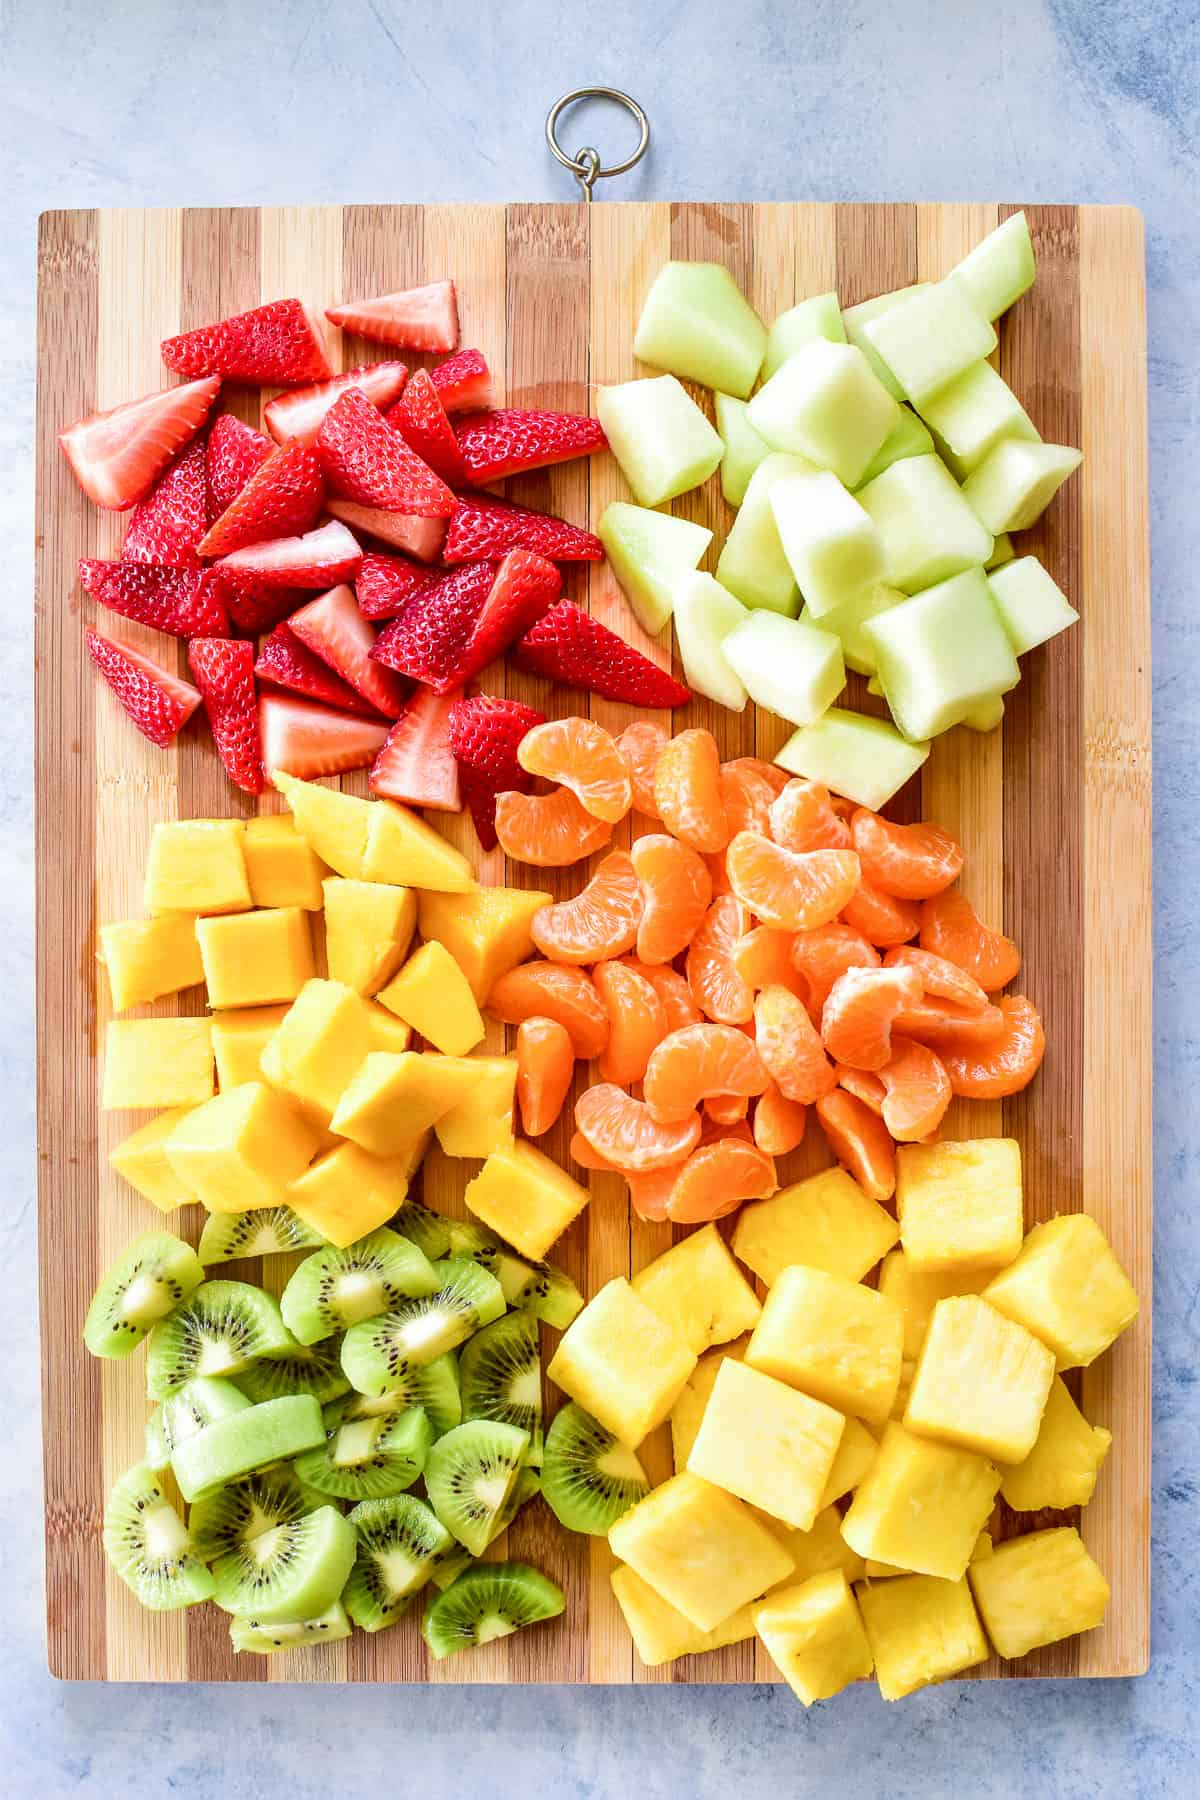 Chopped fruit on a wooden cutting board